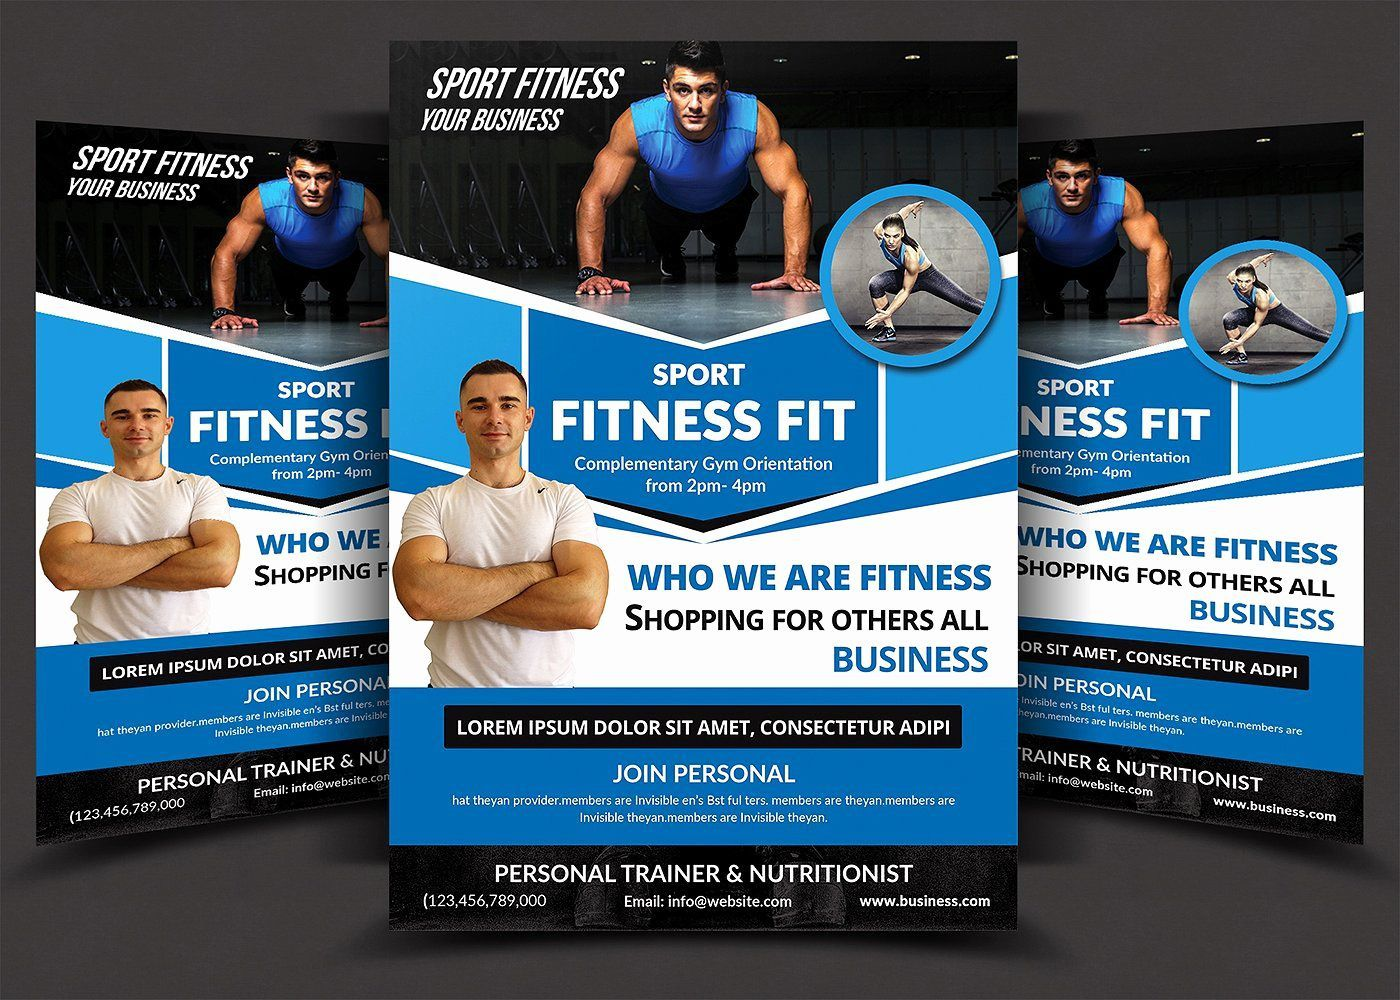 000 Awesome Personal Trainer Flyer Template High Definition  Word PsdFull